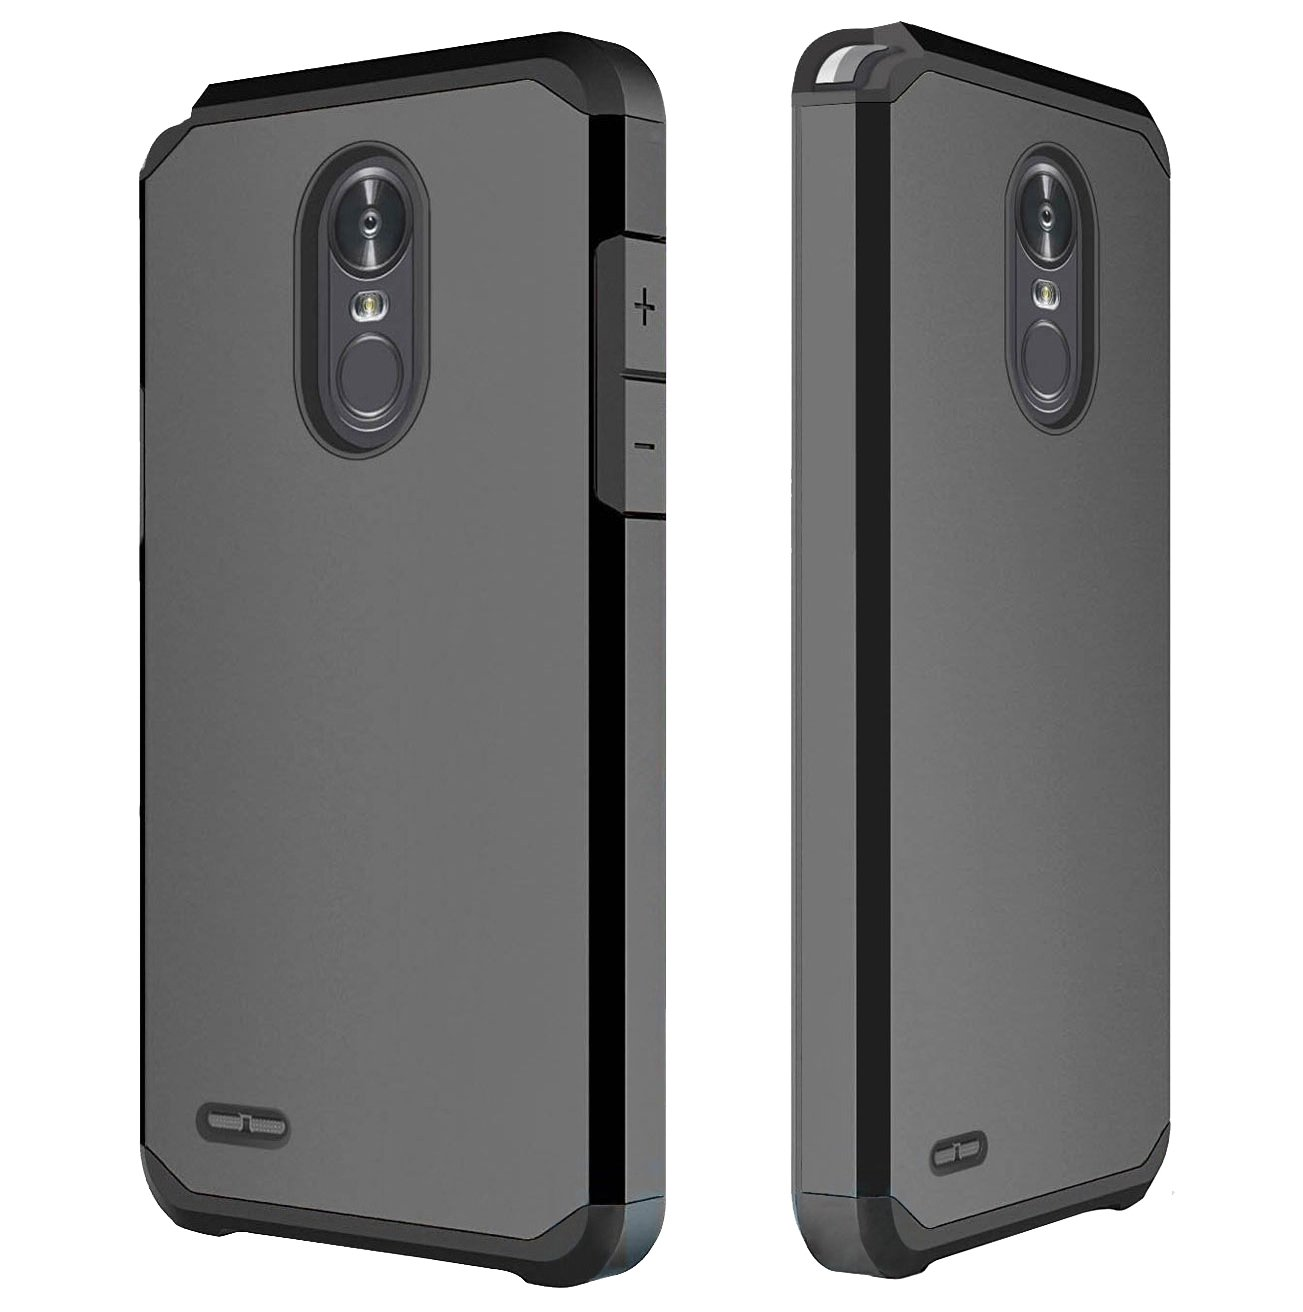 Lg Stylo 3 Case Plus Oeago Hybrid Hardcase Anti Shock Caseology Vanvo Iphone 6 Black Shockproof Drop Protection Impact Rugged Armor Cover For